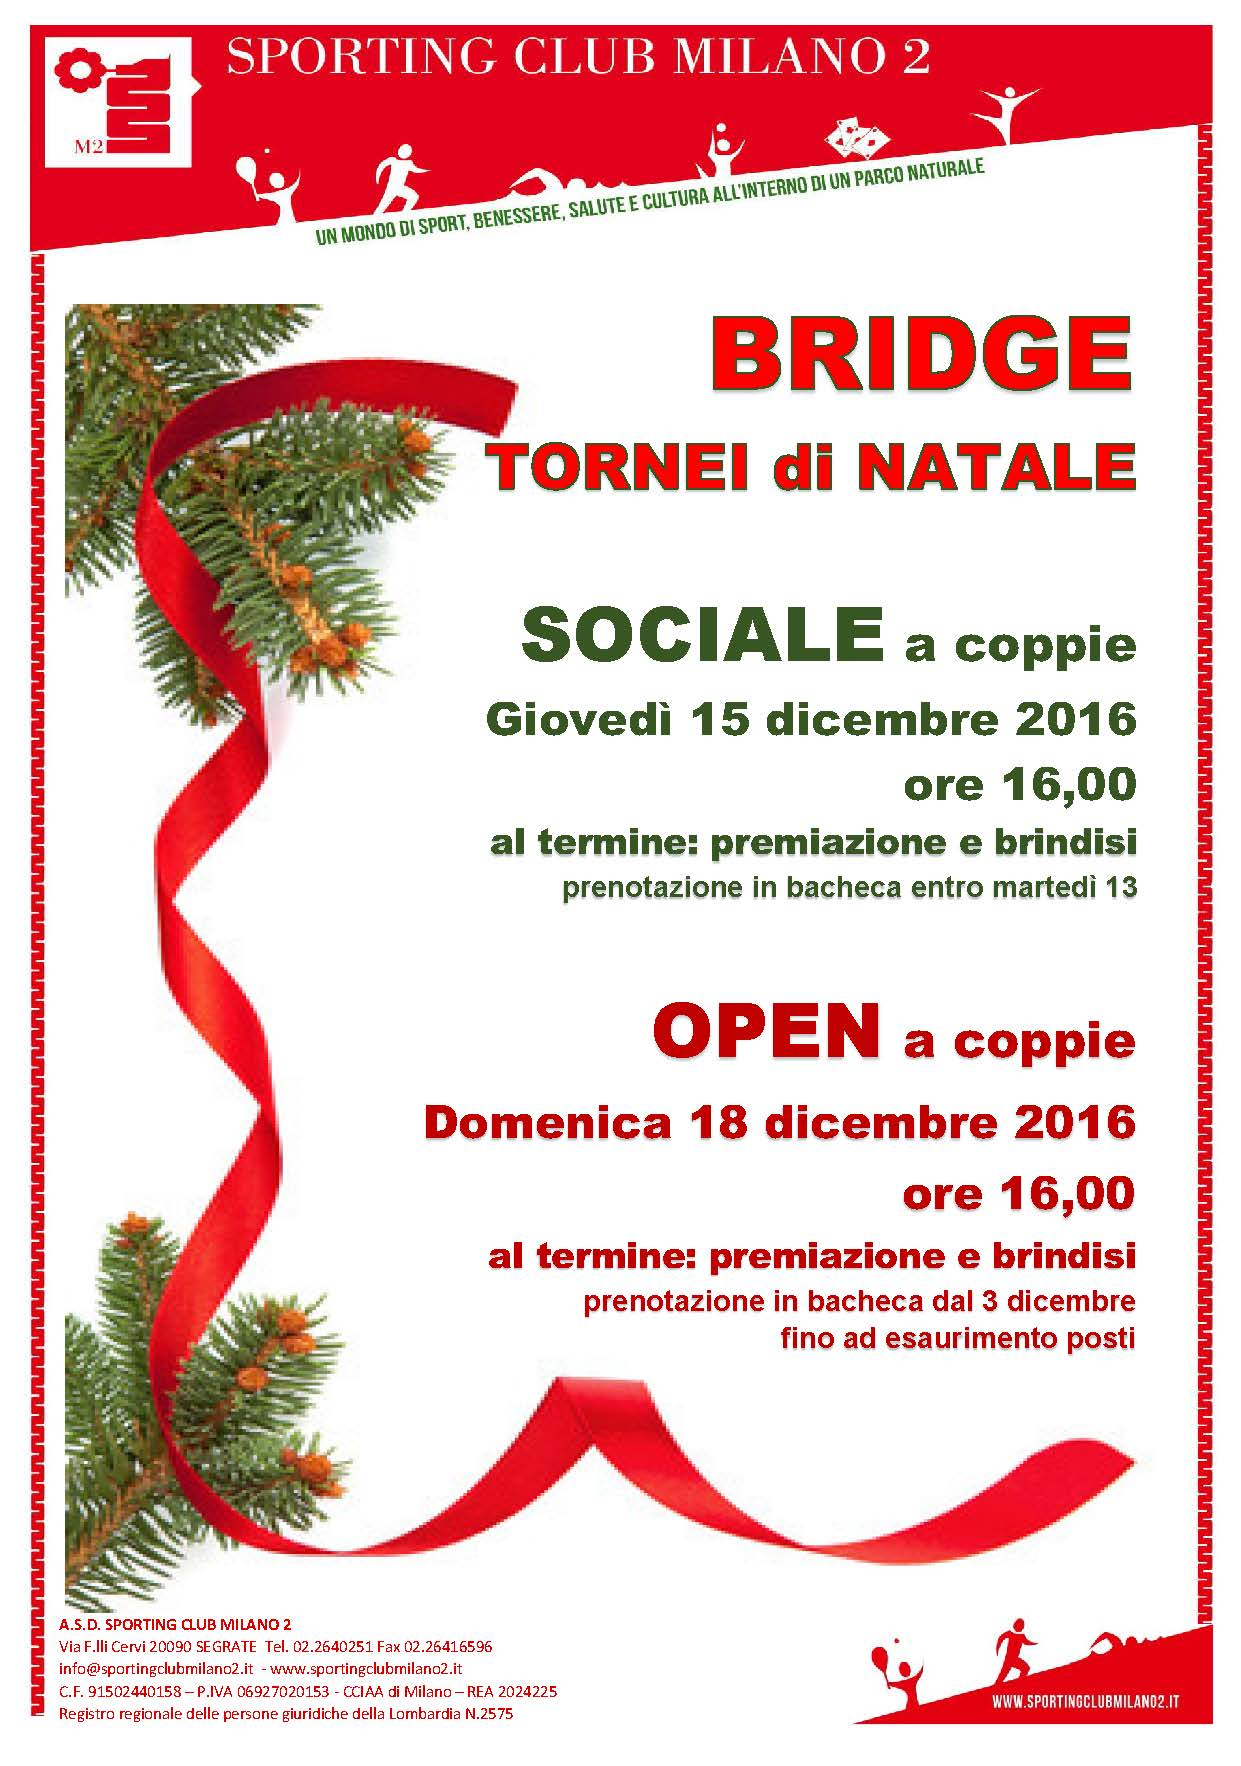 Bridge Tornei di Natale